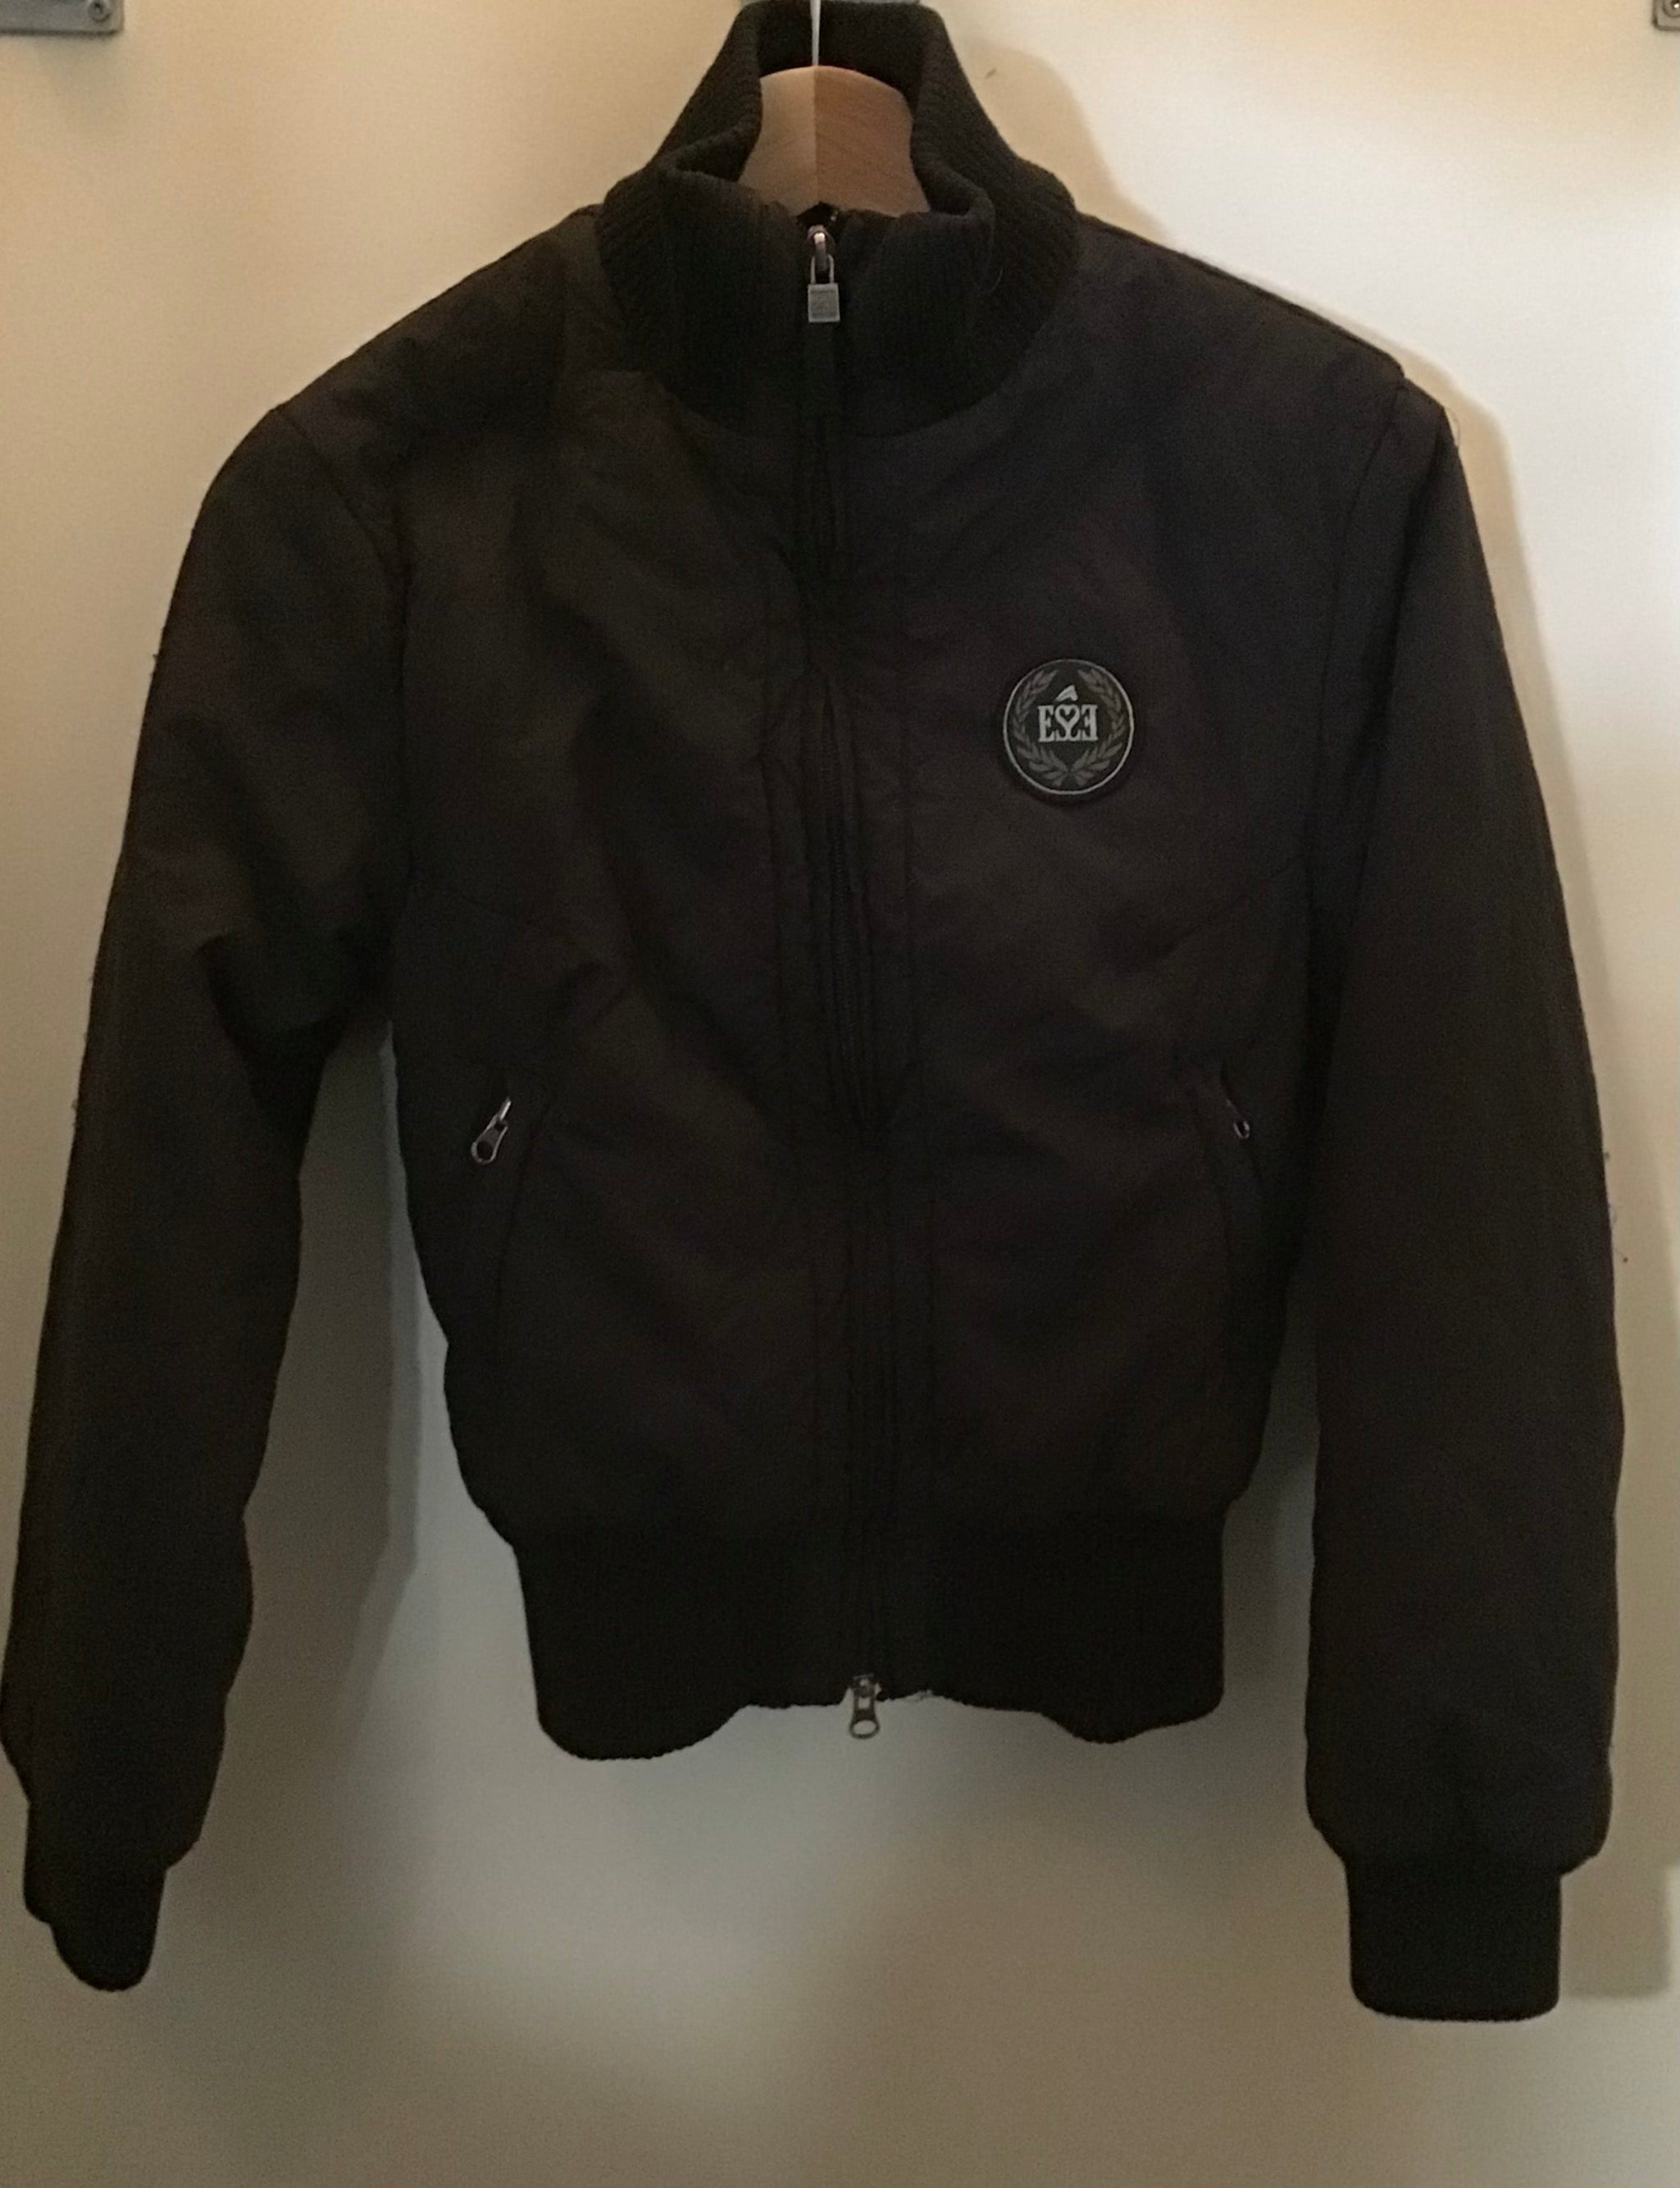 Eurostar Jacket youth XS